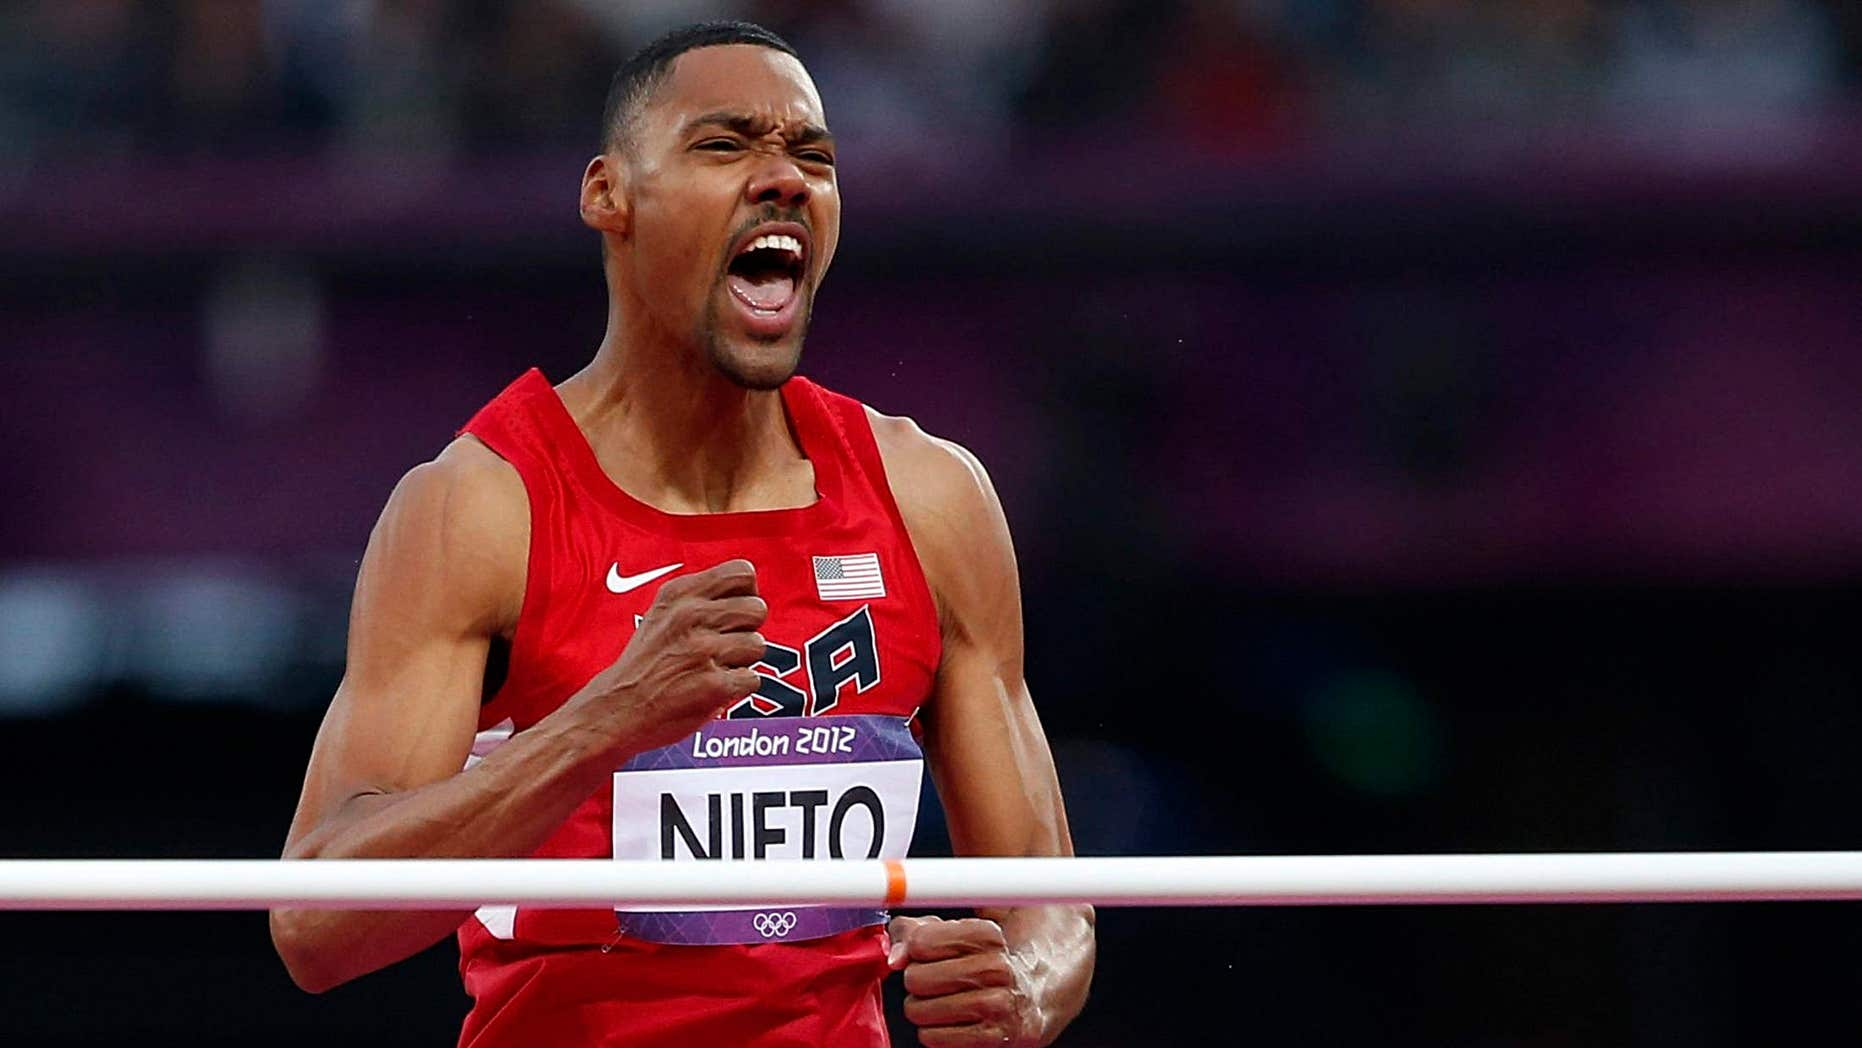 Aug. 7, 2012: Jamie Nieto of the U.S. reacts during the men's high jump final during the London 2012 Olympic Games at the Olympic Stadium.